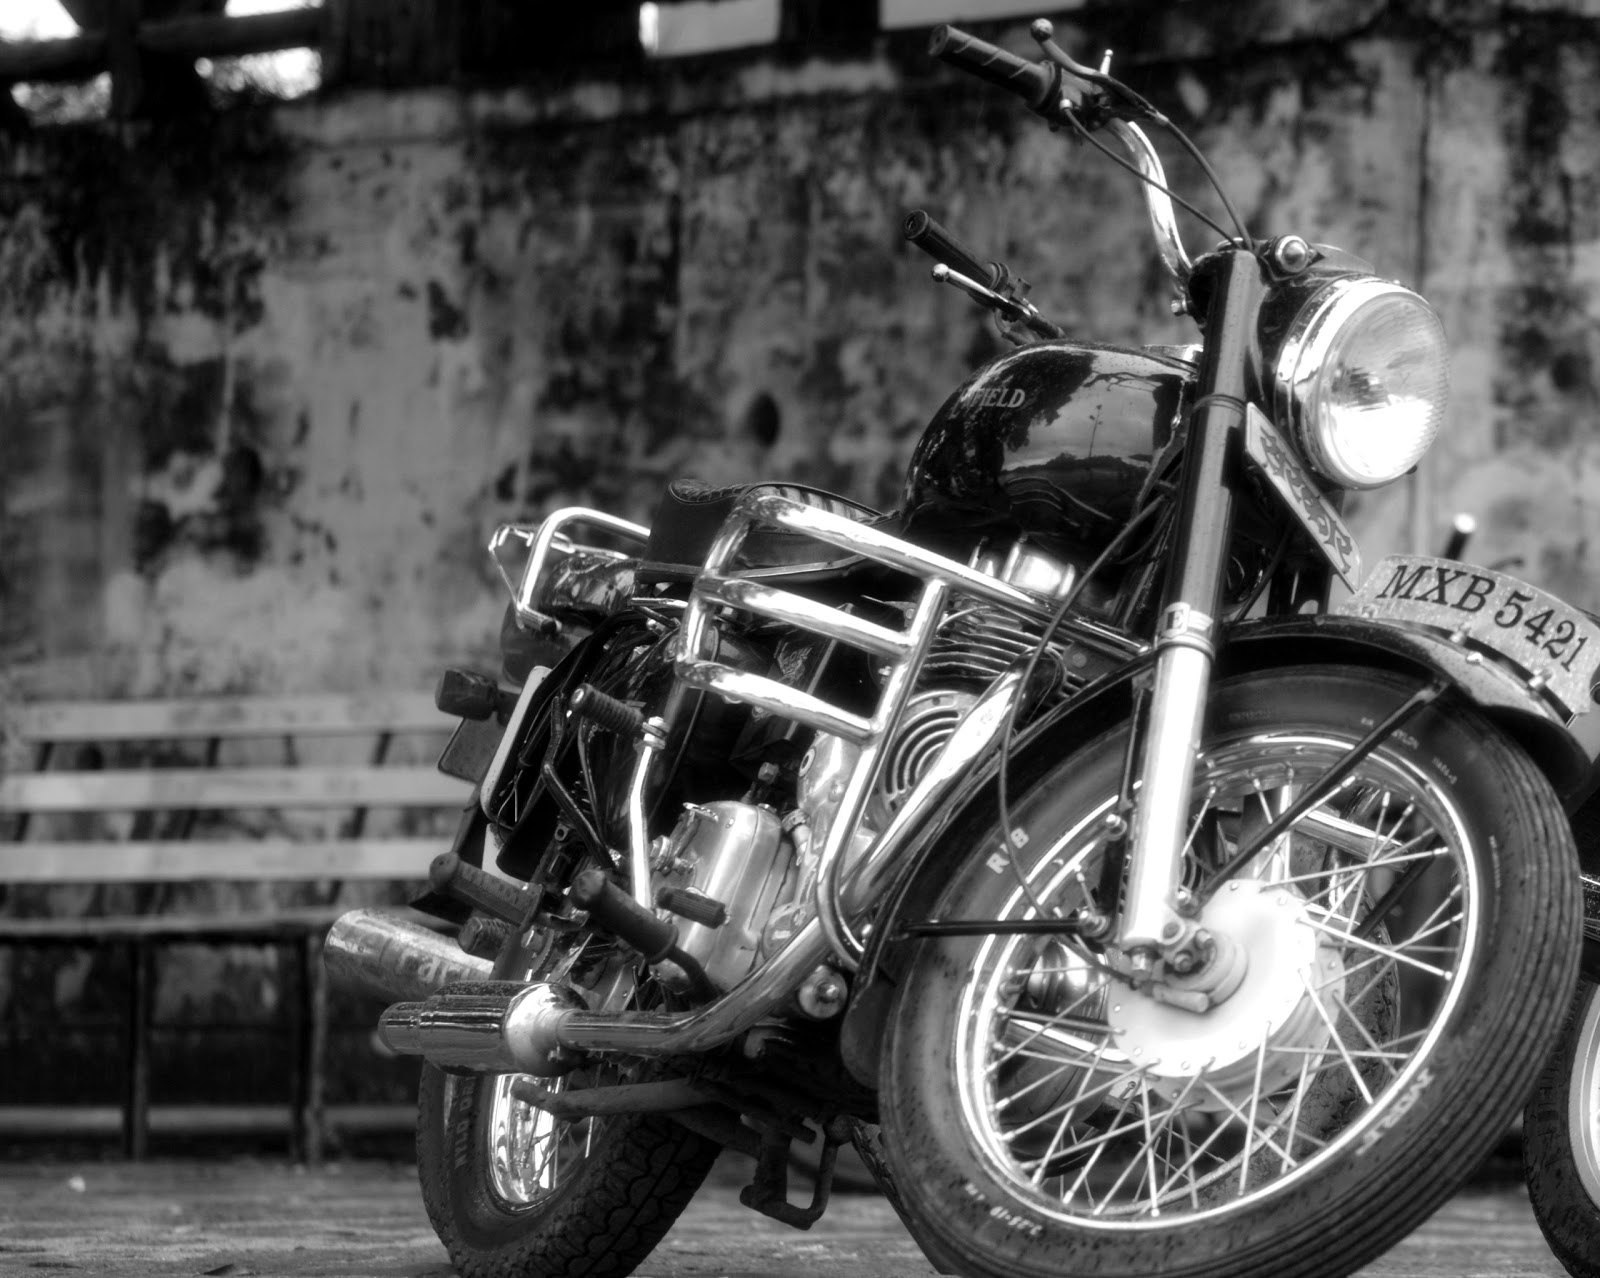 Black Royal Enfield Wallpaper Royal Enfield Black And White